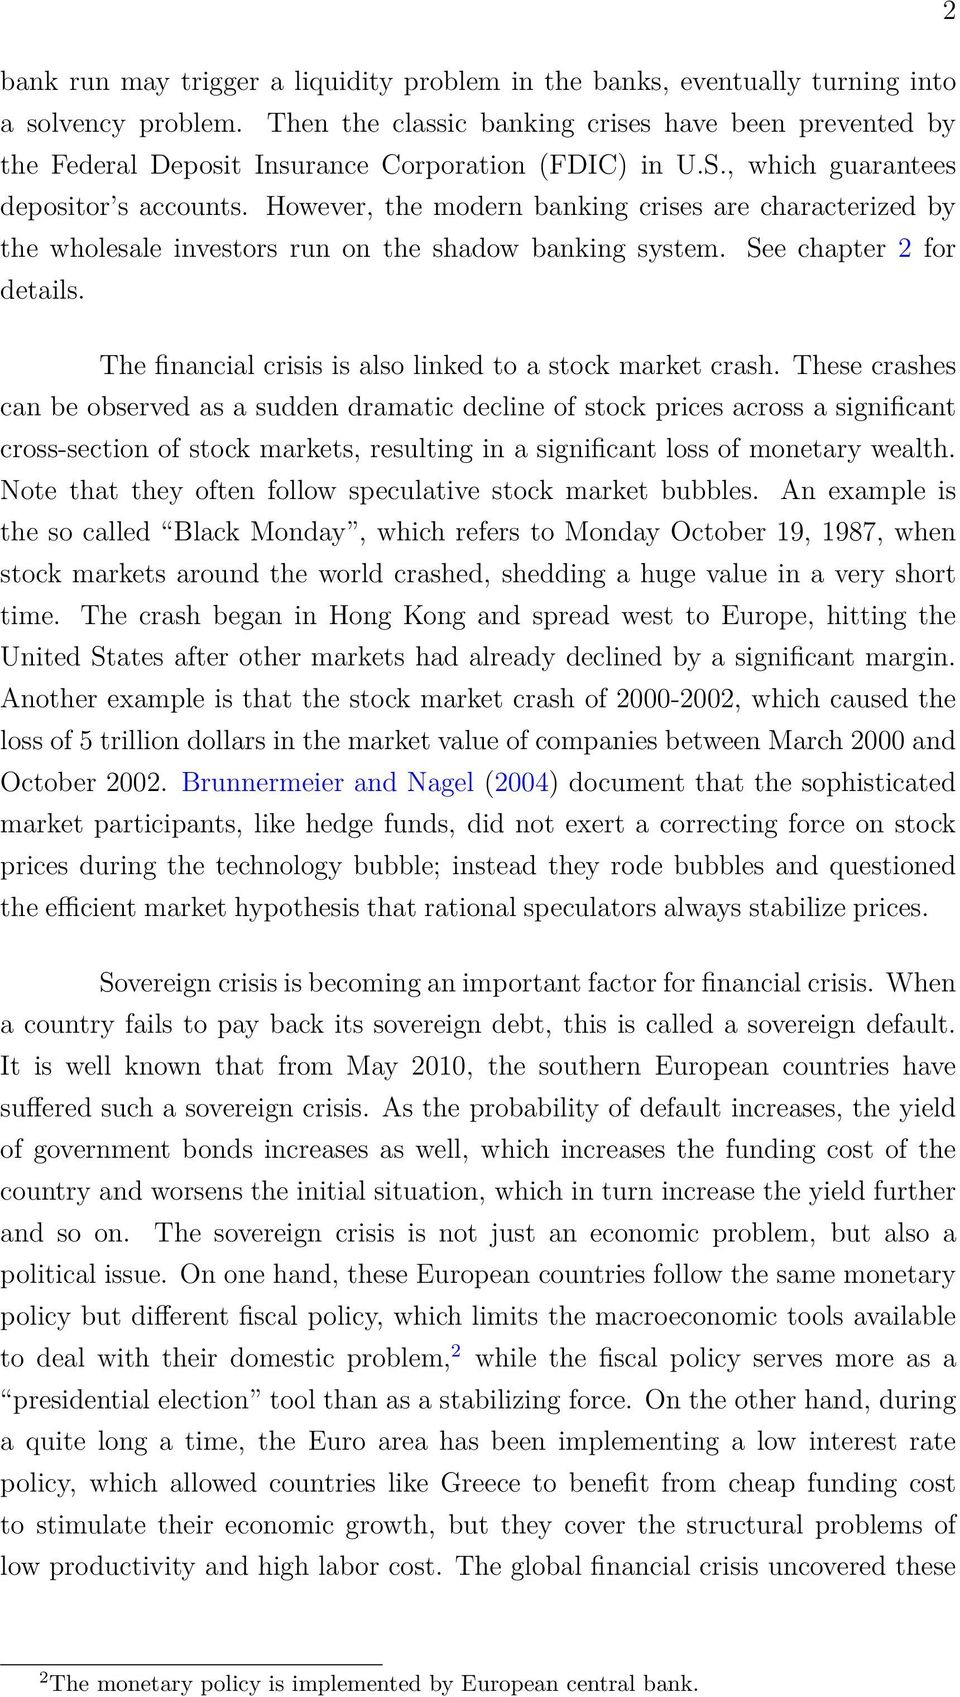 However, the modern banking crises are characterized by the wholesale investors run on the shadow banking system. See chapter 2 for details.